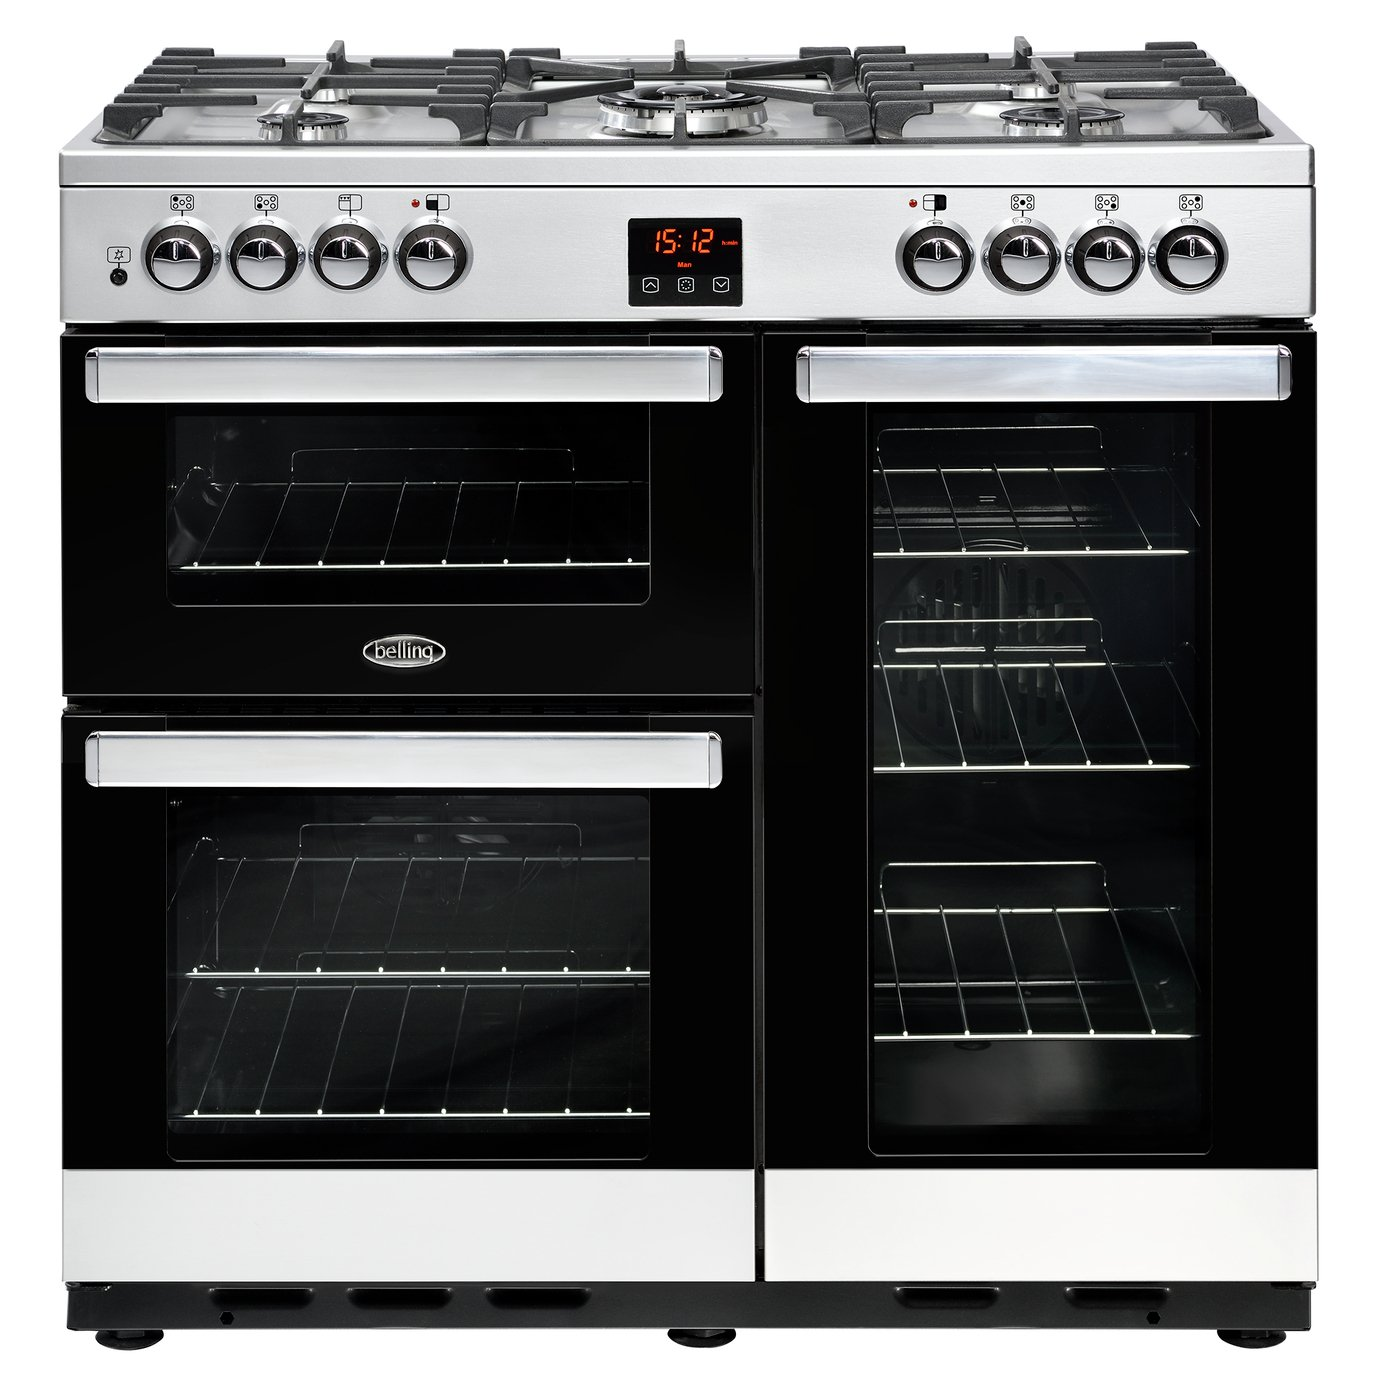 Belling Cookcentre 90DFT Dual Fuel Range Cooker S/ Steel & Black from Belling